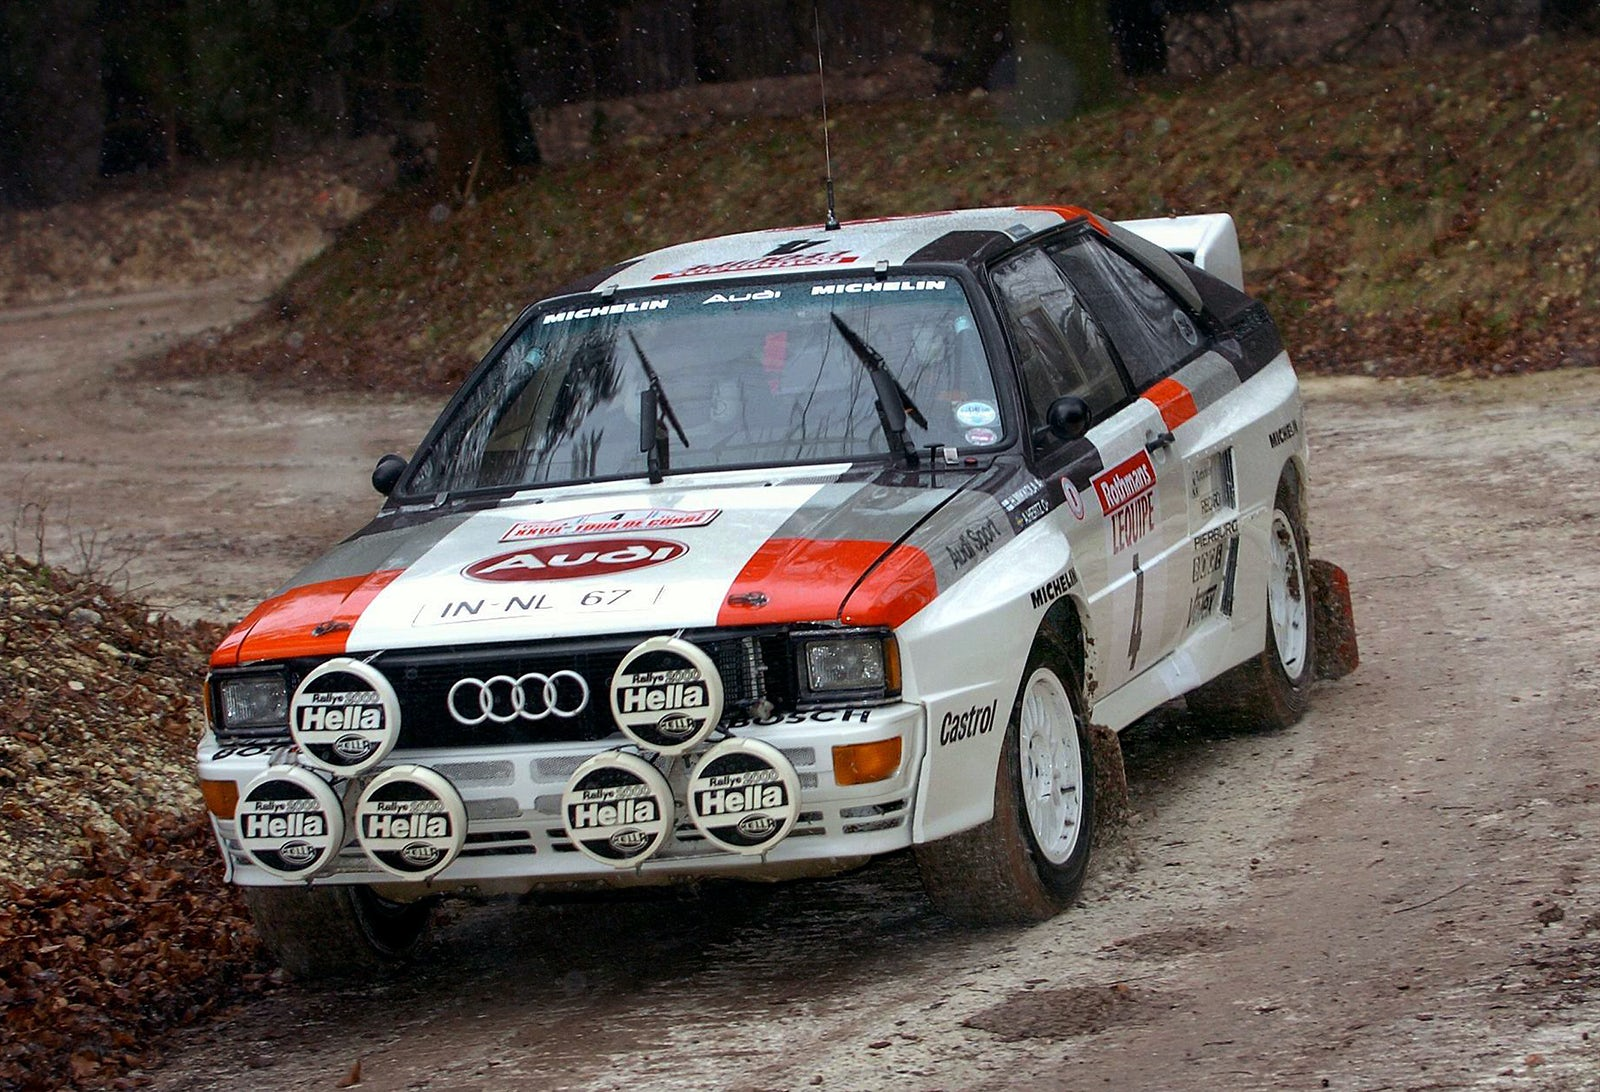 Audis Quattro All Wheel Drive System Explained Carwow Shw Me Transfer Case Diagram Finn Hannu Mikkolain In His 1983 Audi Rally Car